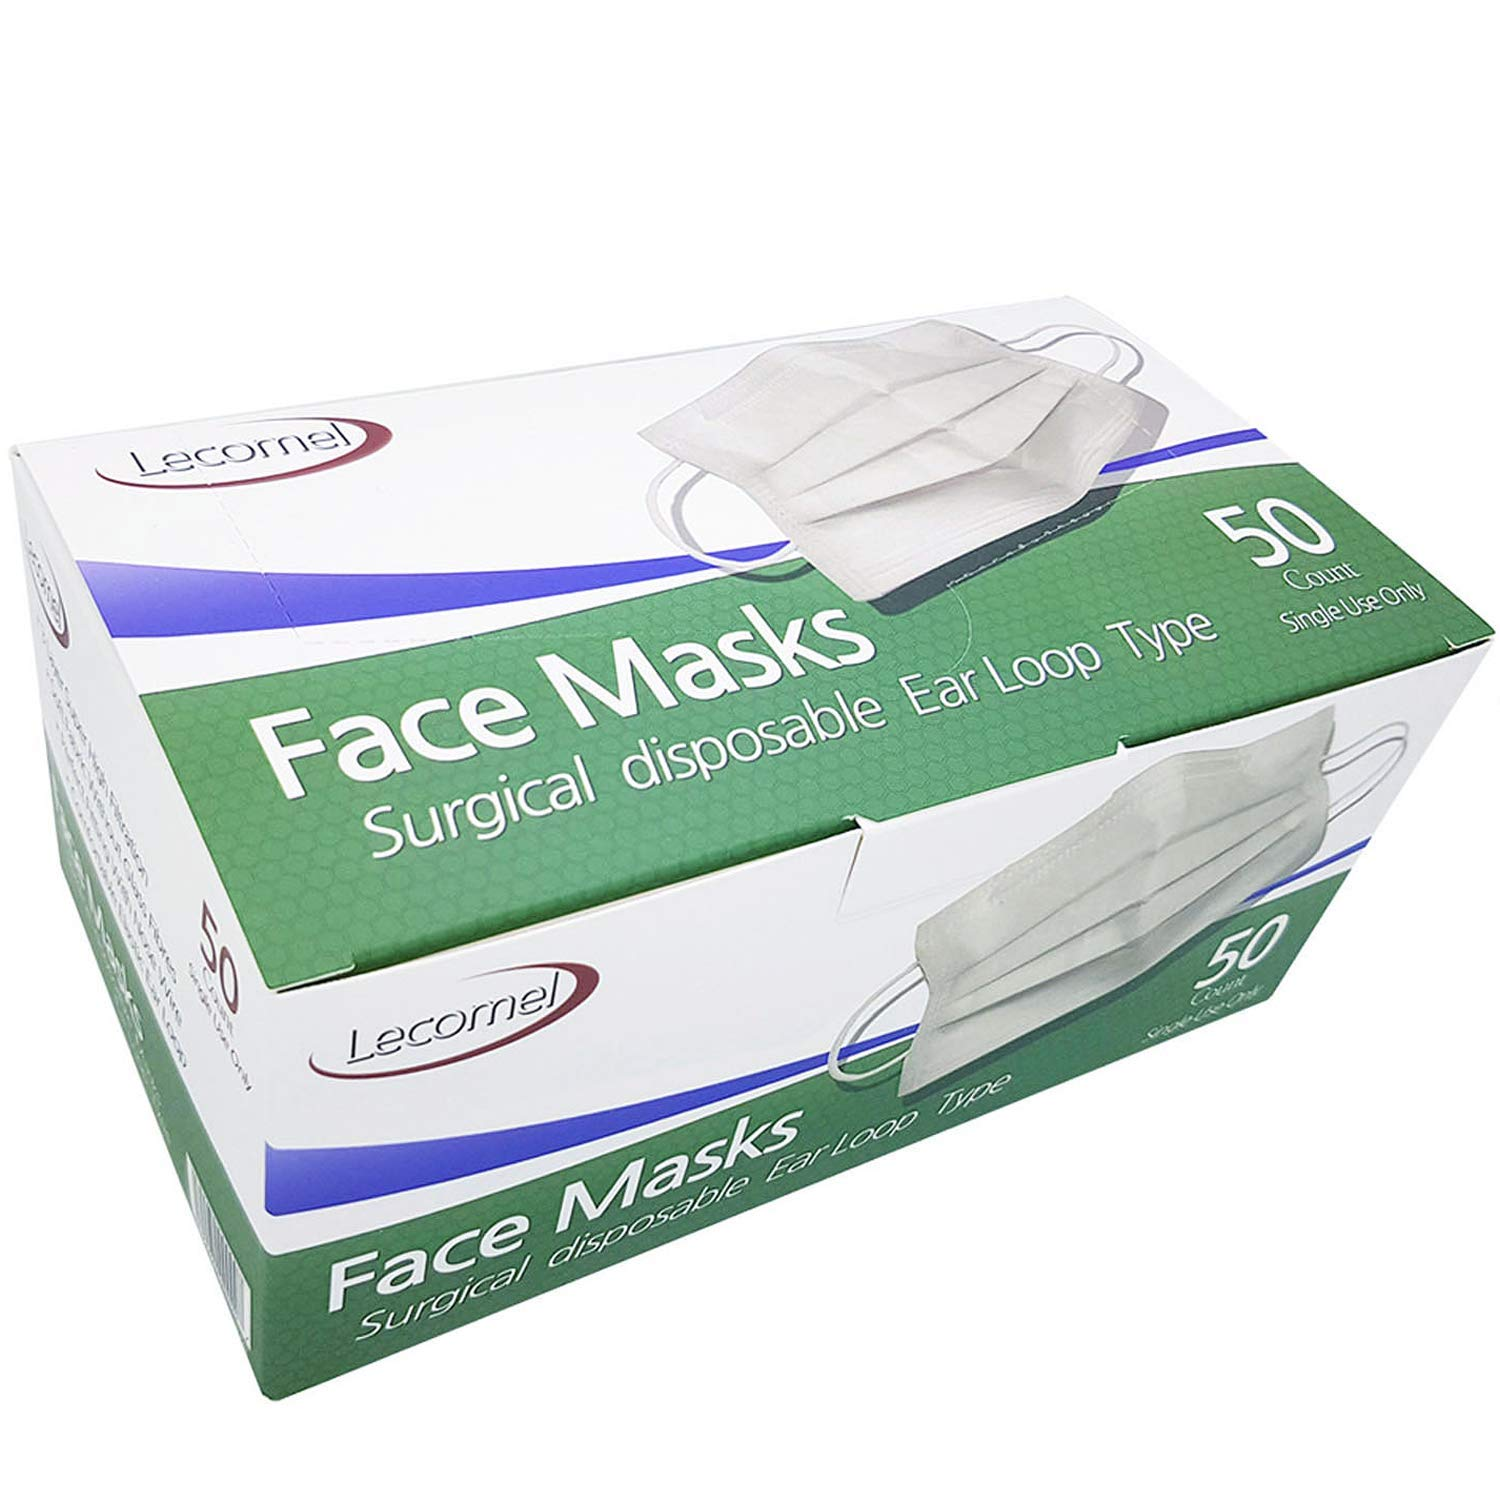 Ear Medical Mask Procedure Surgical 50 Face Green 1 Total Box Loop